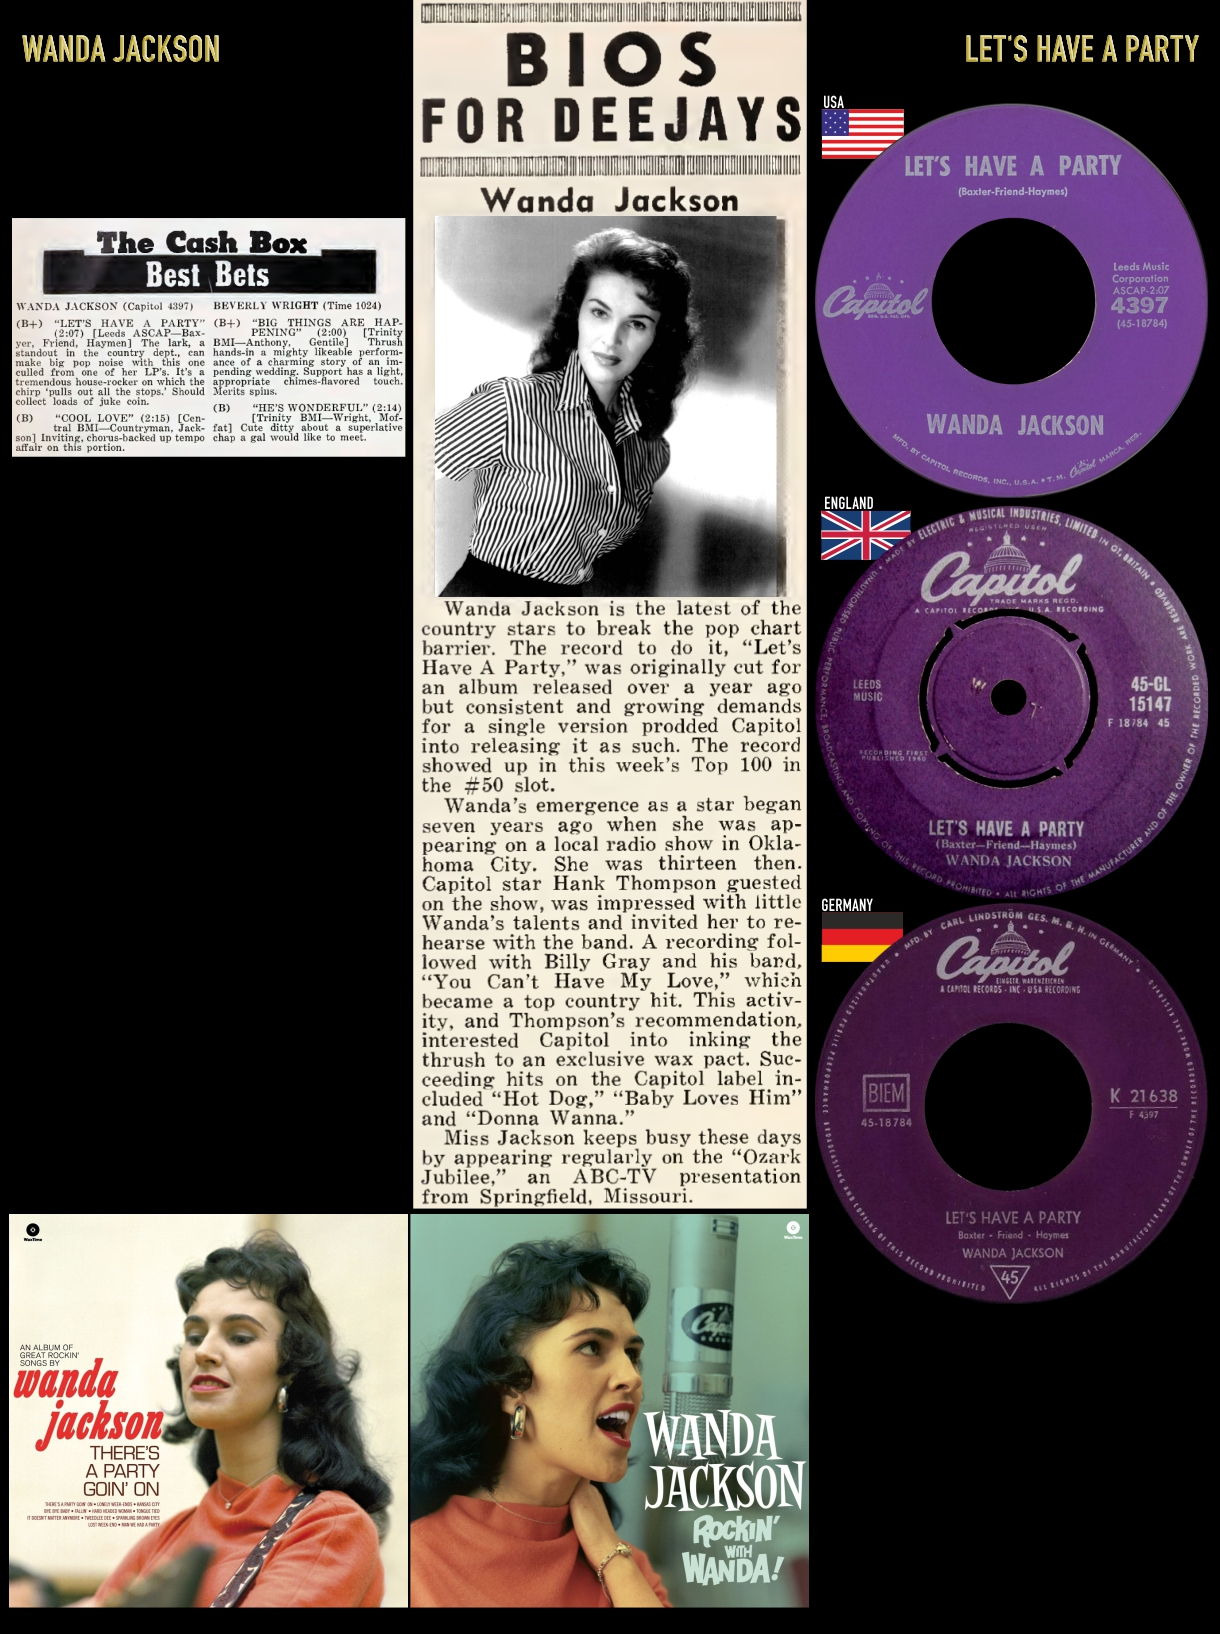 600827_Wanda Jackson_Let's Have a Party